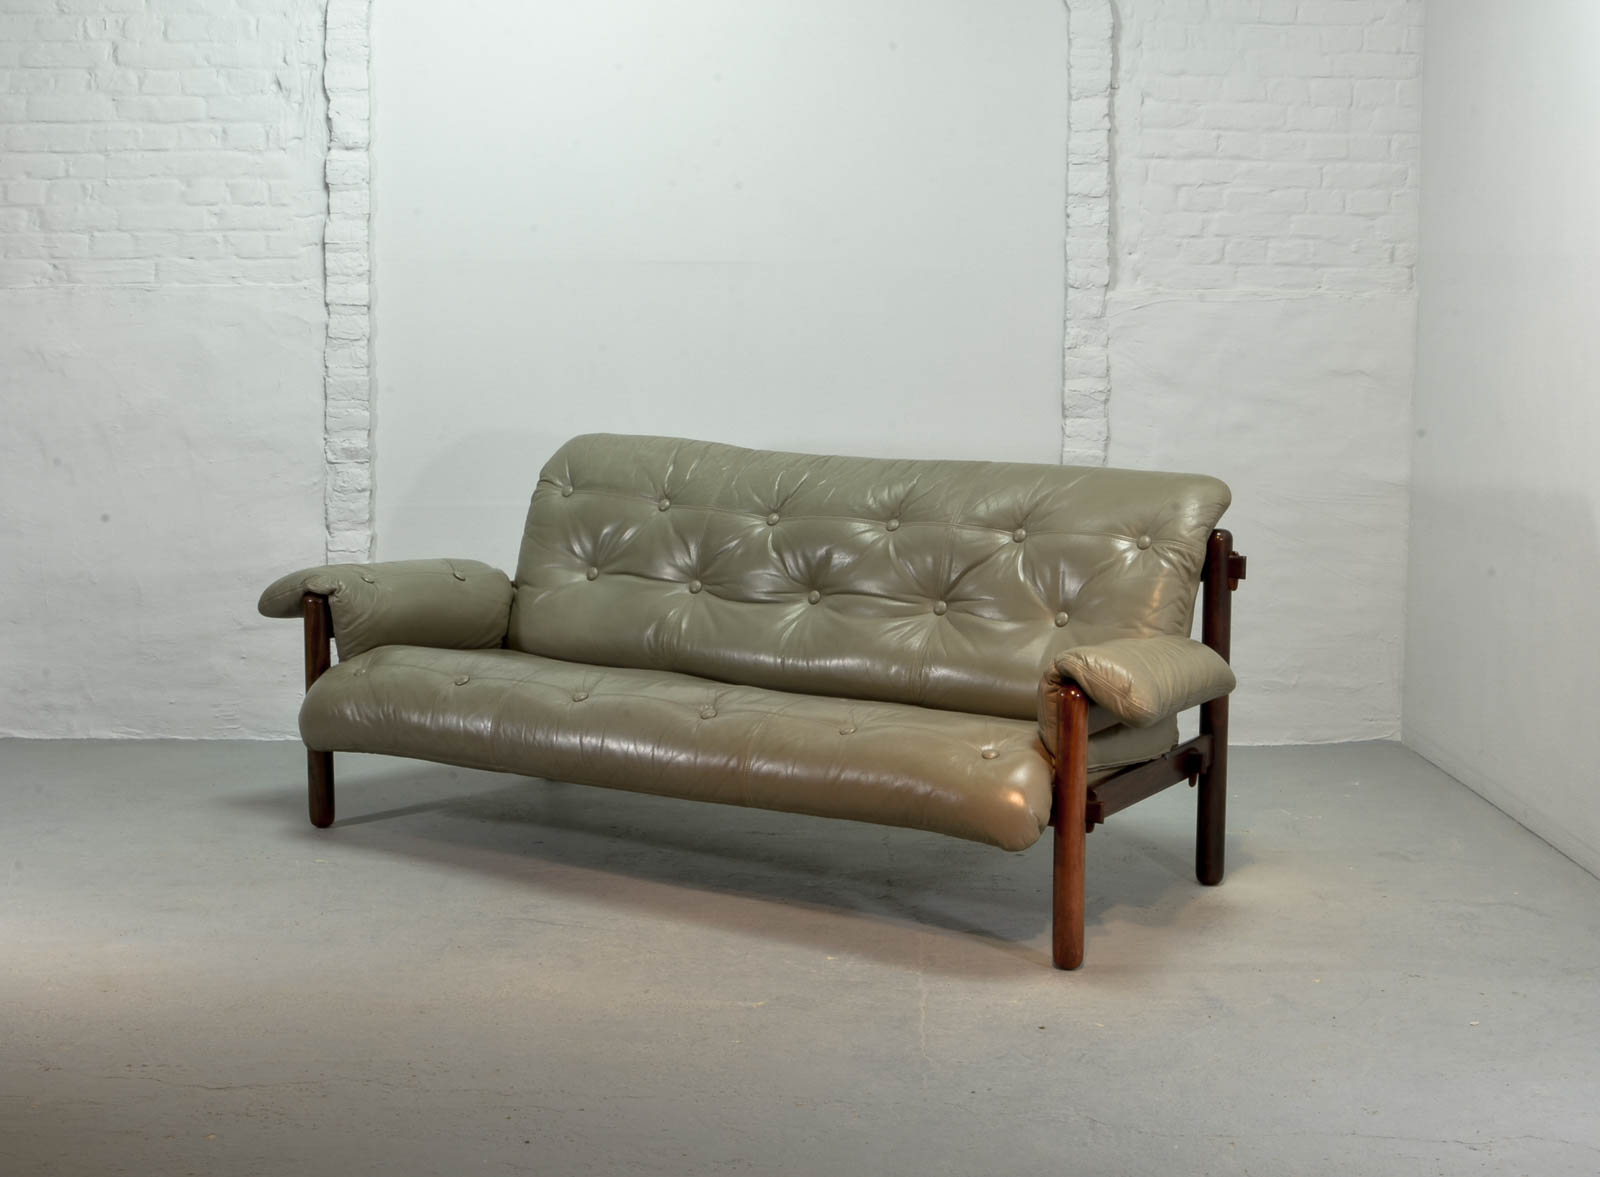 Exquisite Brazilian Leather And Jacarandá Wood Sofa By Jean Gillon For Woodart